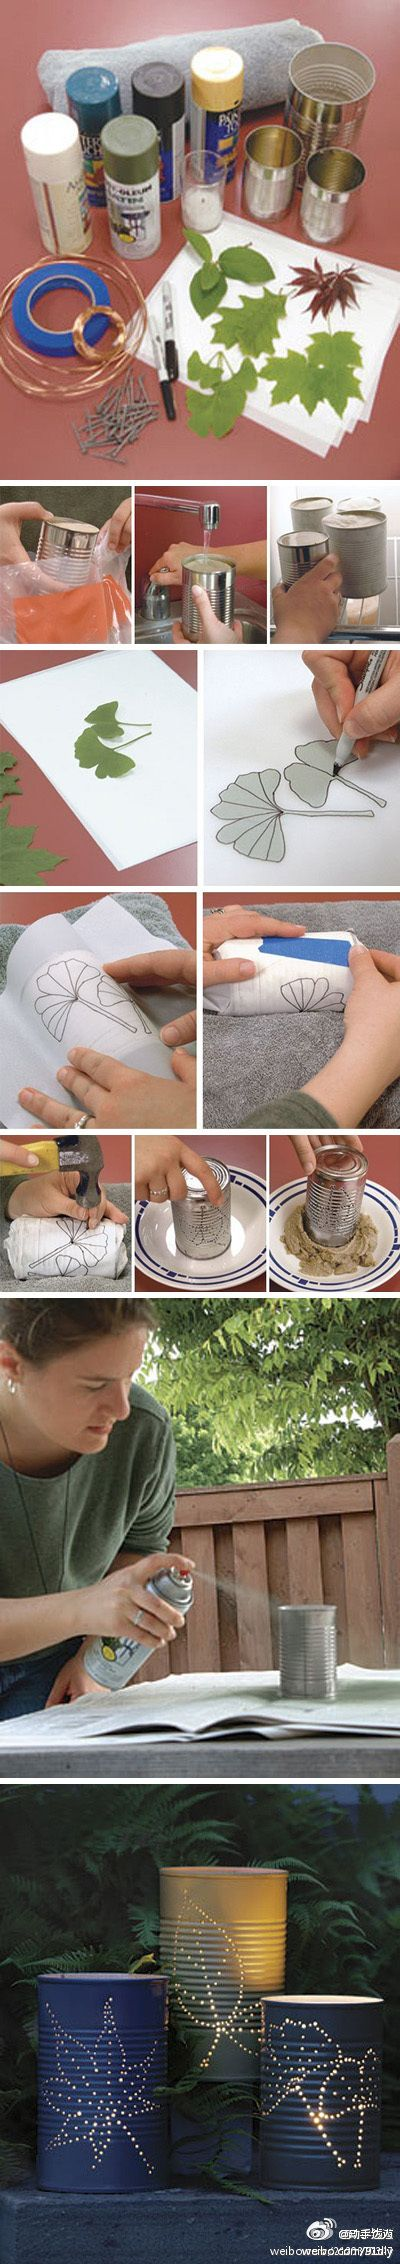 Fill a tin can with water, freeze, then punch holes with a nail to make a pattern for the light of a candle to show through